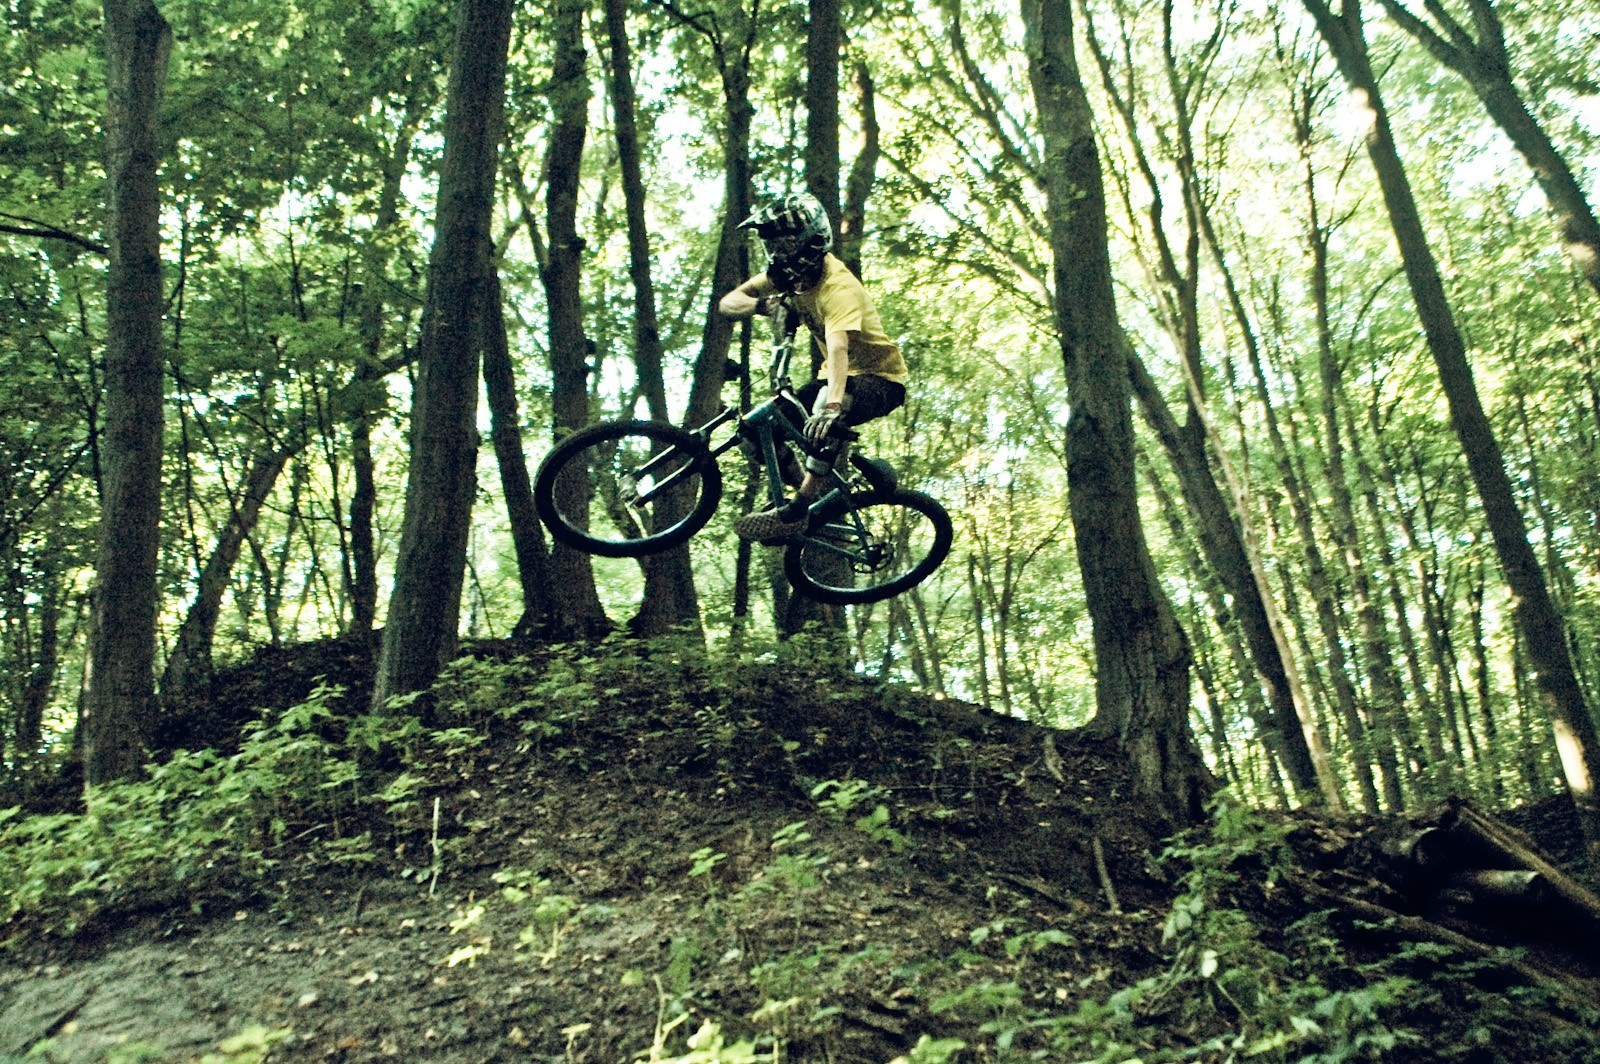 forests Ukraine extreme sports HD Wallpaper